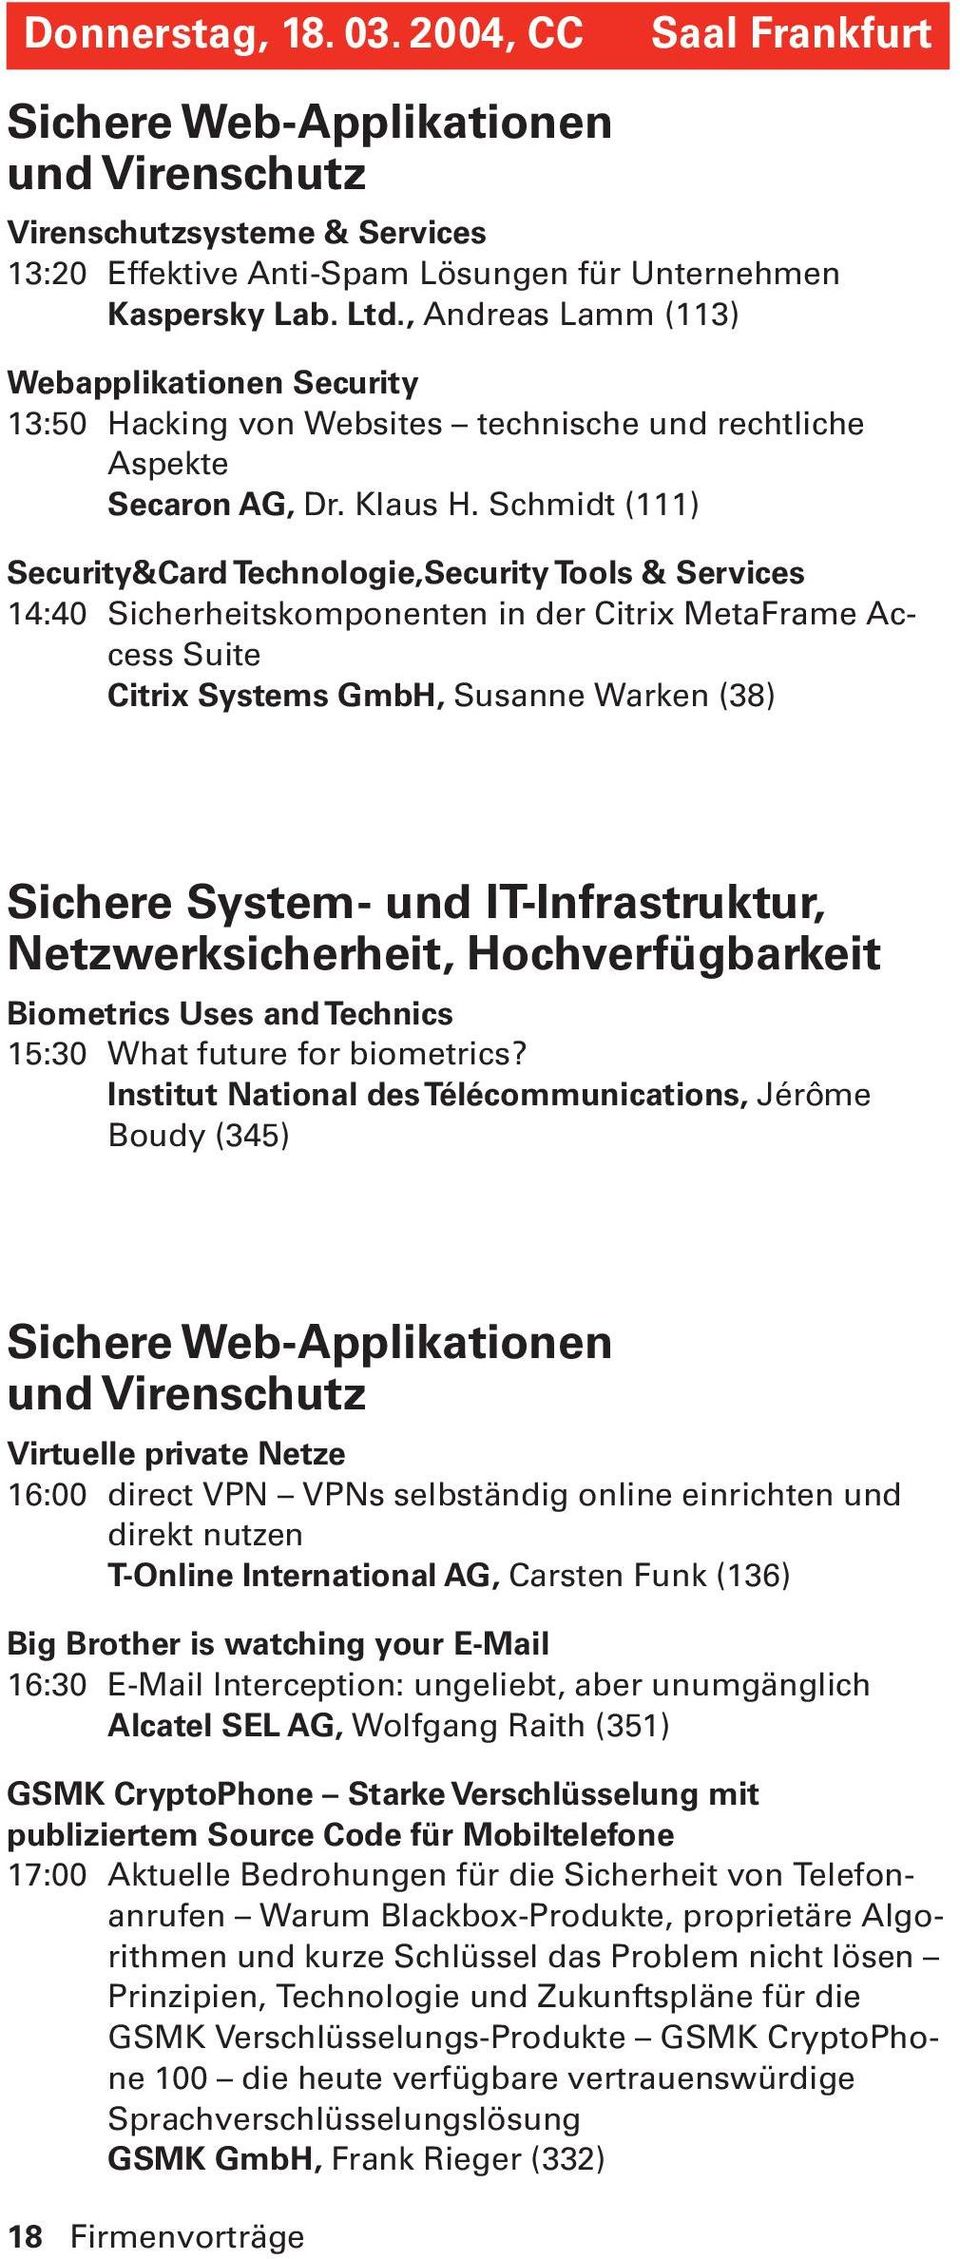 Schmidt (111) Security&Card Technologie,Security Tools & Services 14:40 Sicherheitskomponenten in der Citrix MetaFrame Access Suite Citrix Systems GmbH, Susanne Warken (38) Sichere System- und